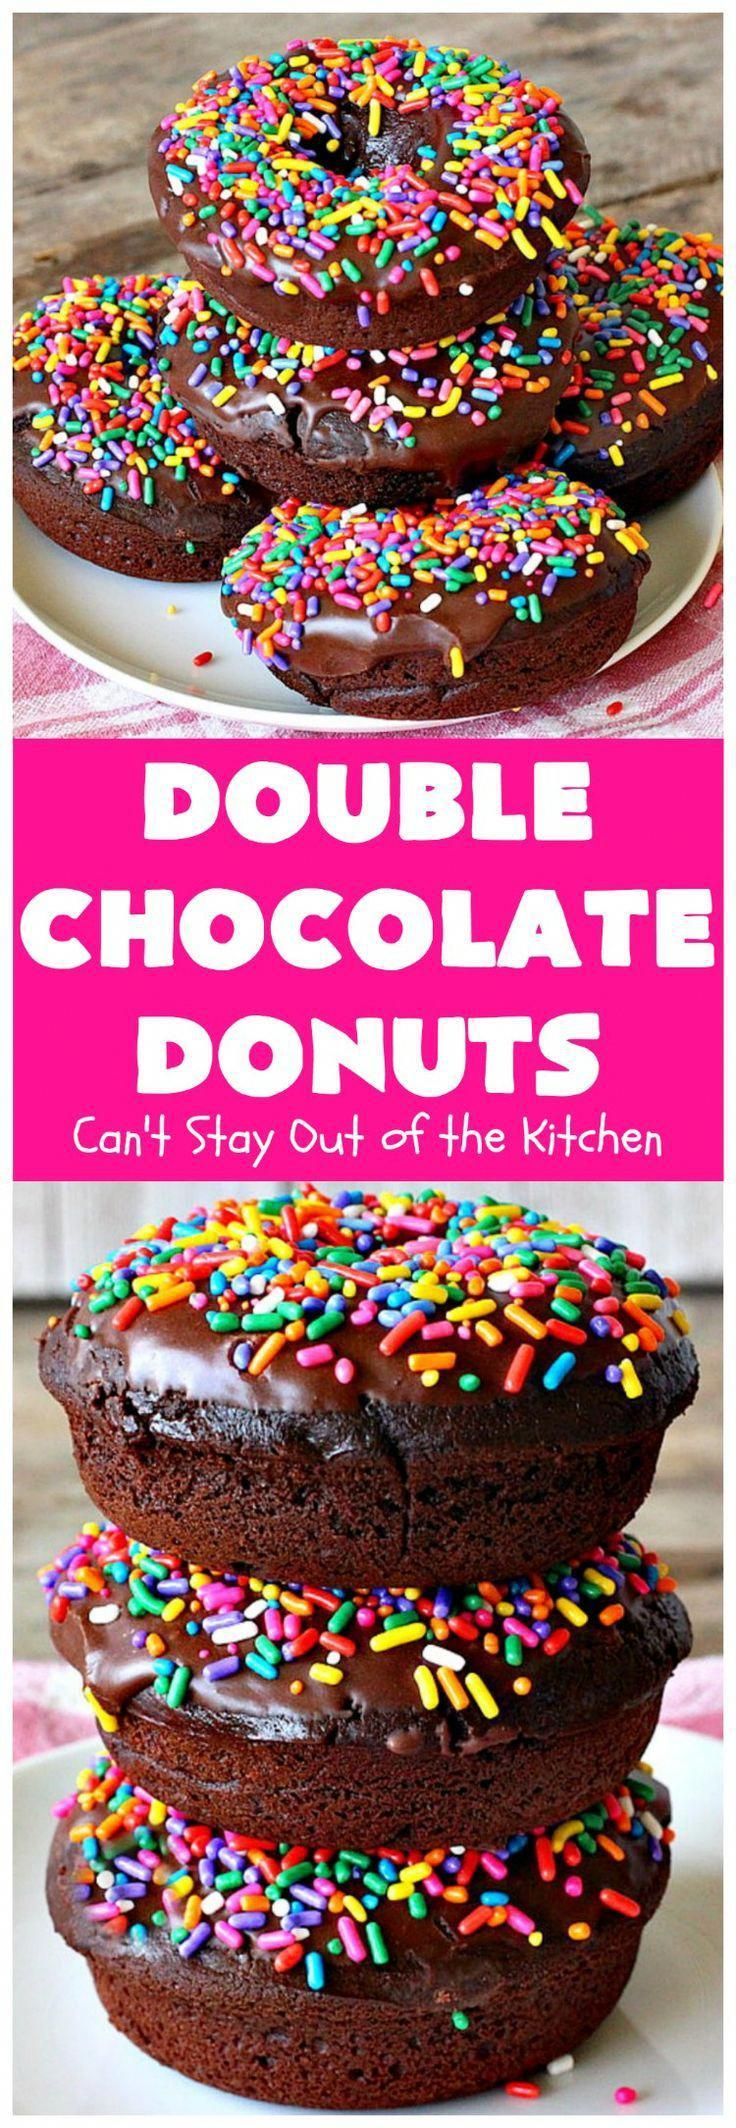 Double Chocolate Donuts | Can't Stay Out of the Kitchen | these are irresistible & perfect for a like or The chocolate icing & make them heavenly.